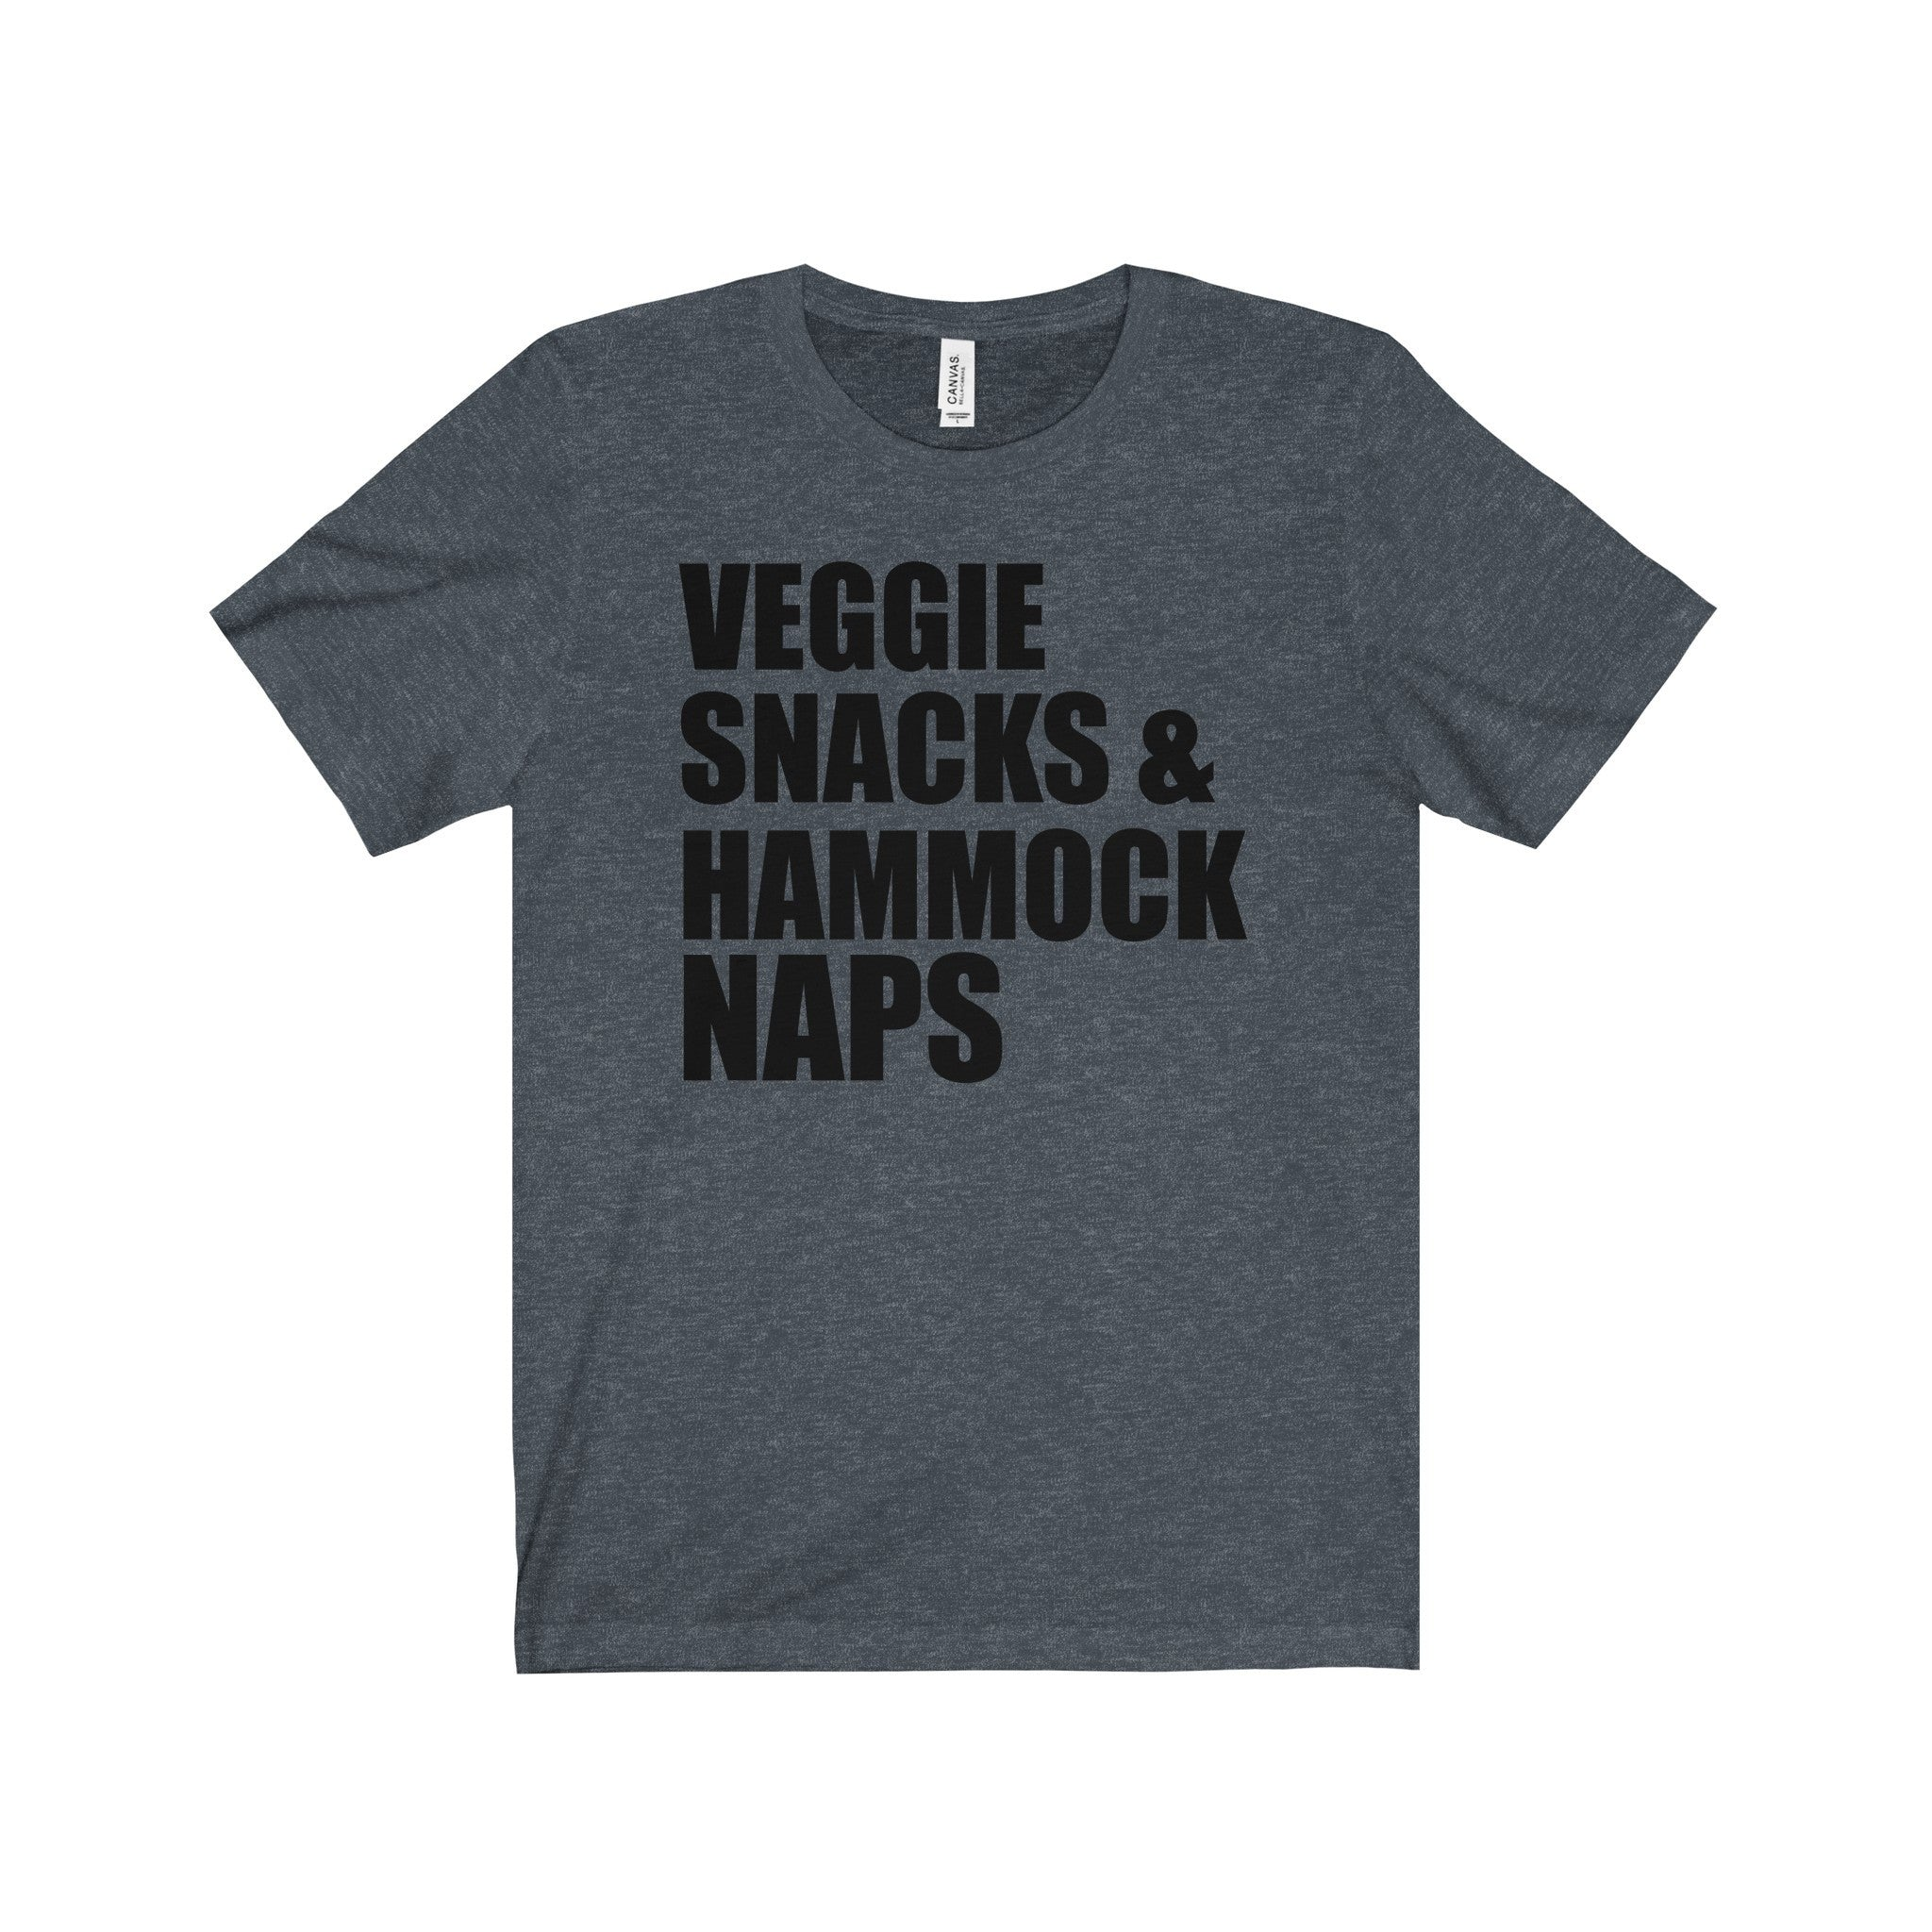 Veggie Snacks and Hammock Naps Black Letter Tee (6 colors available)